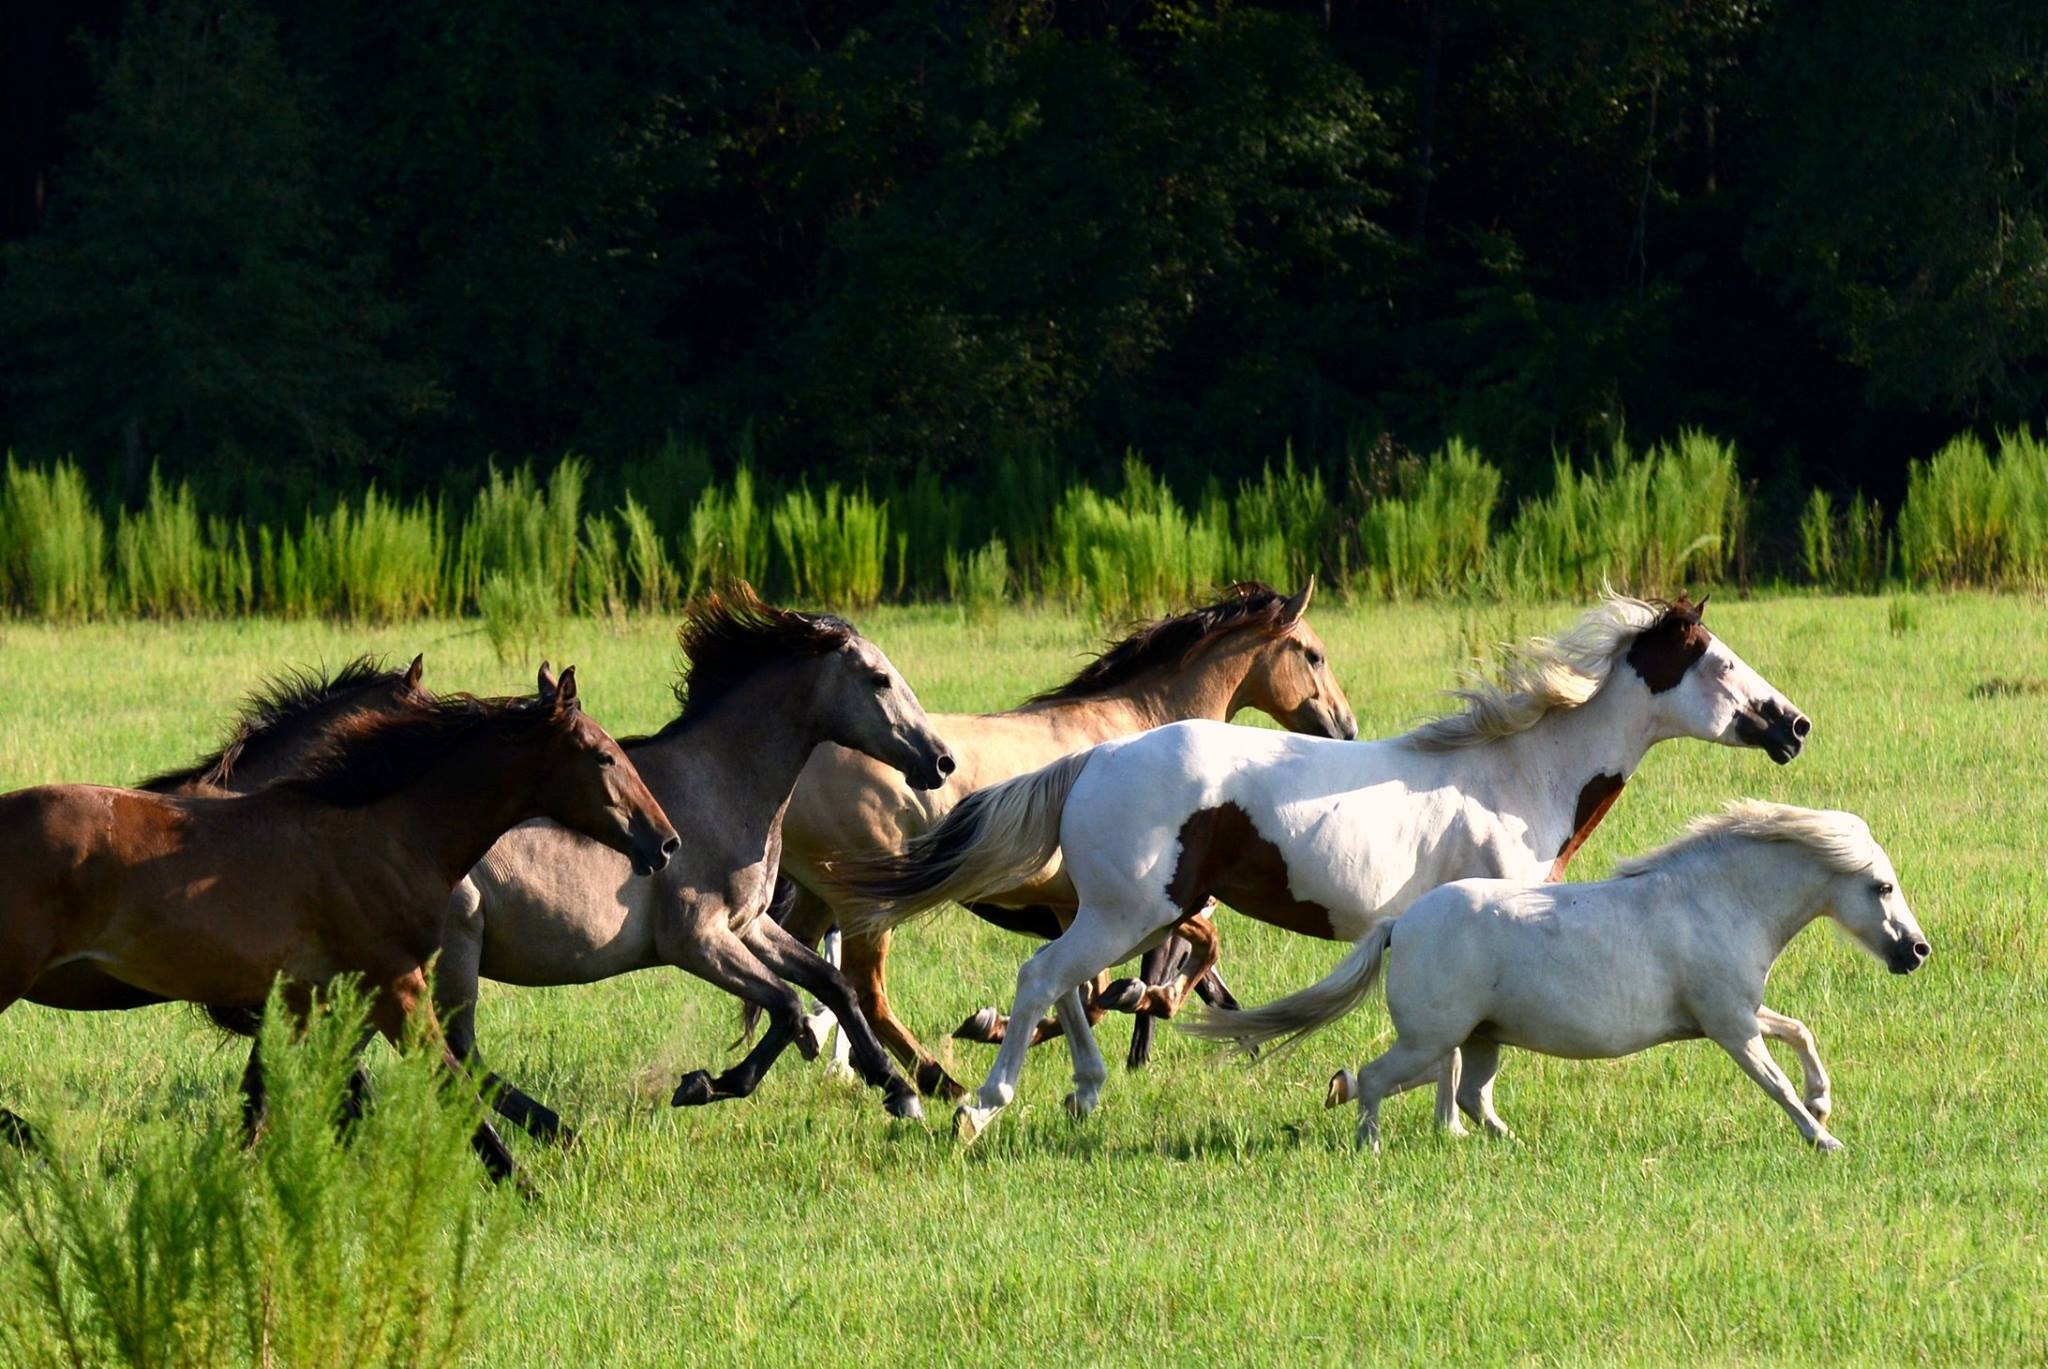 How our wild horses ended up being sent overseas to Germany — Straight from the Horse's Heart